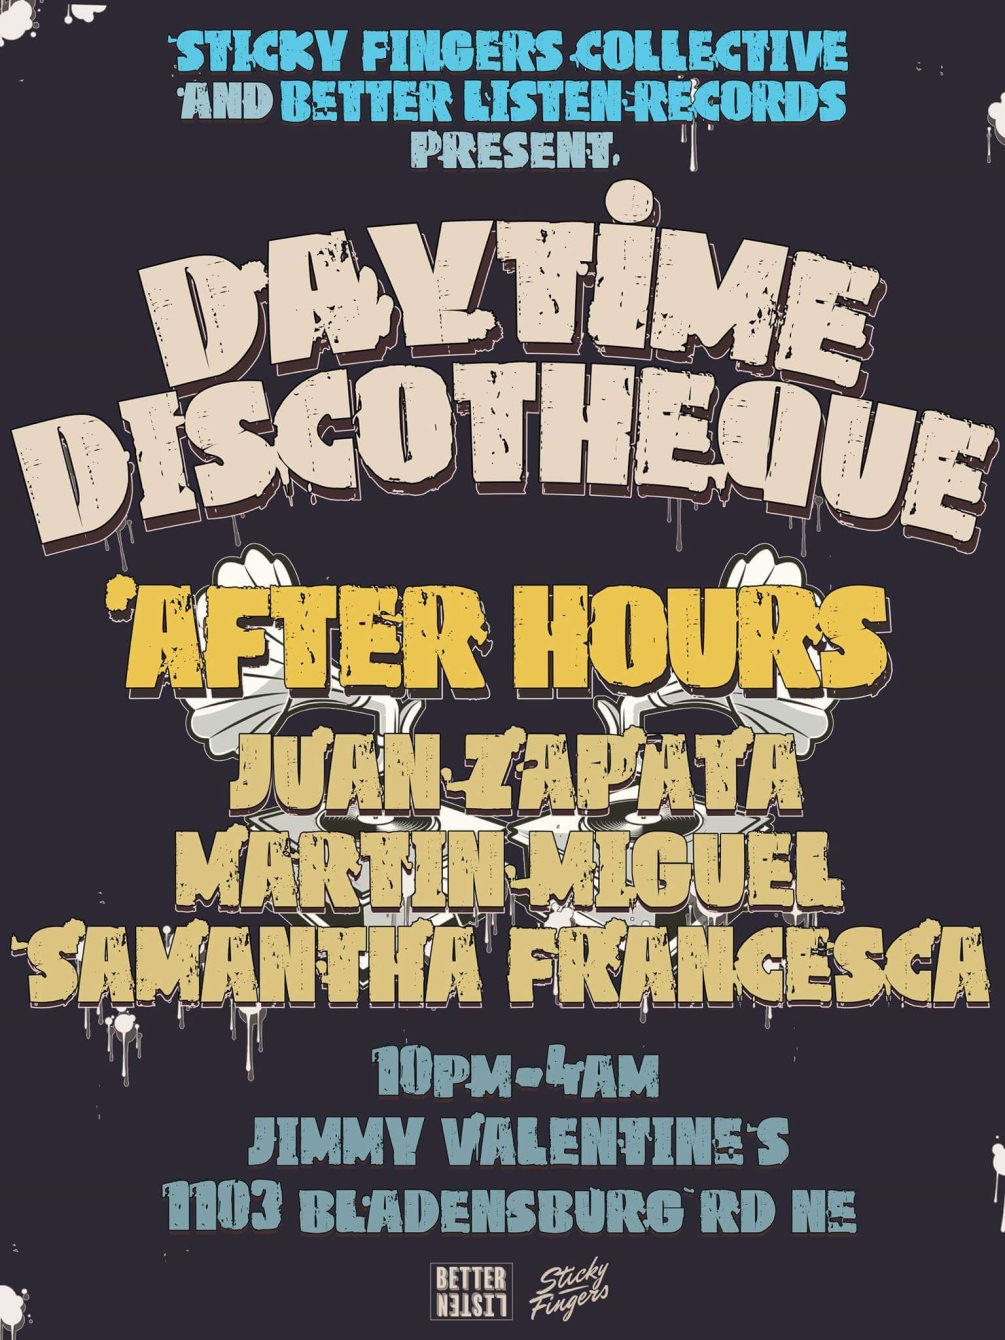 Daytime Discothèque Feat. Byron The Aquarius with Boss Ross, Baronhawk Poitier, Hot Coffee - Flyer back